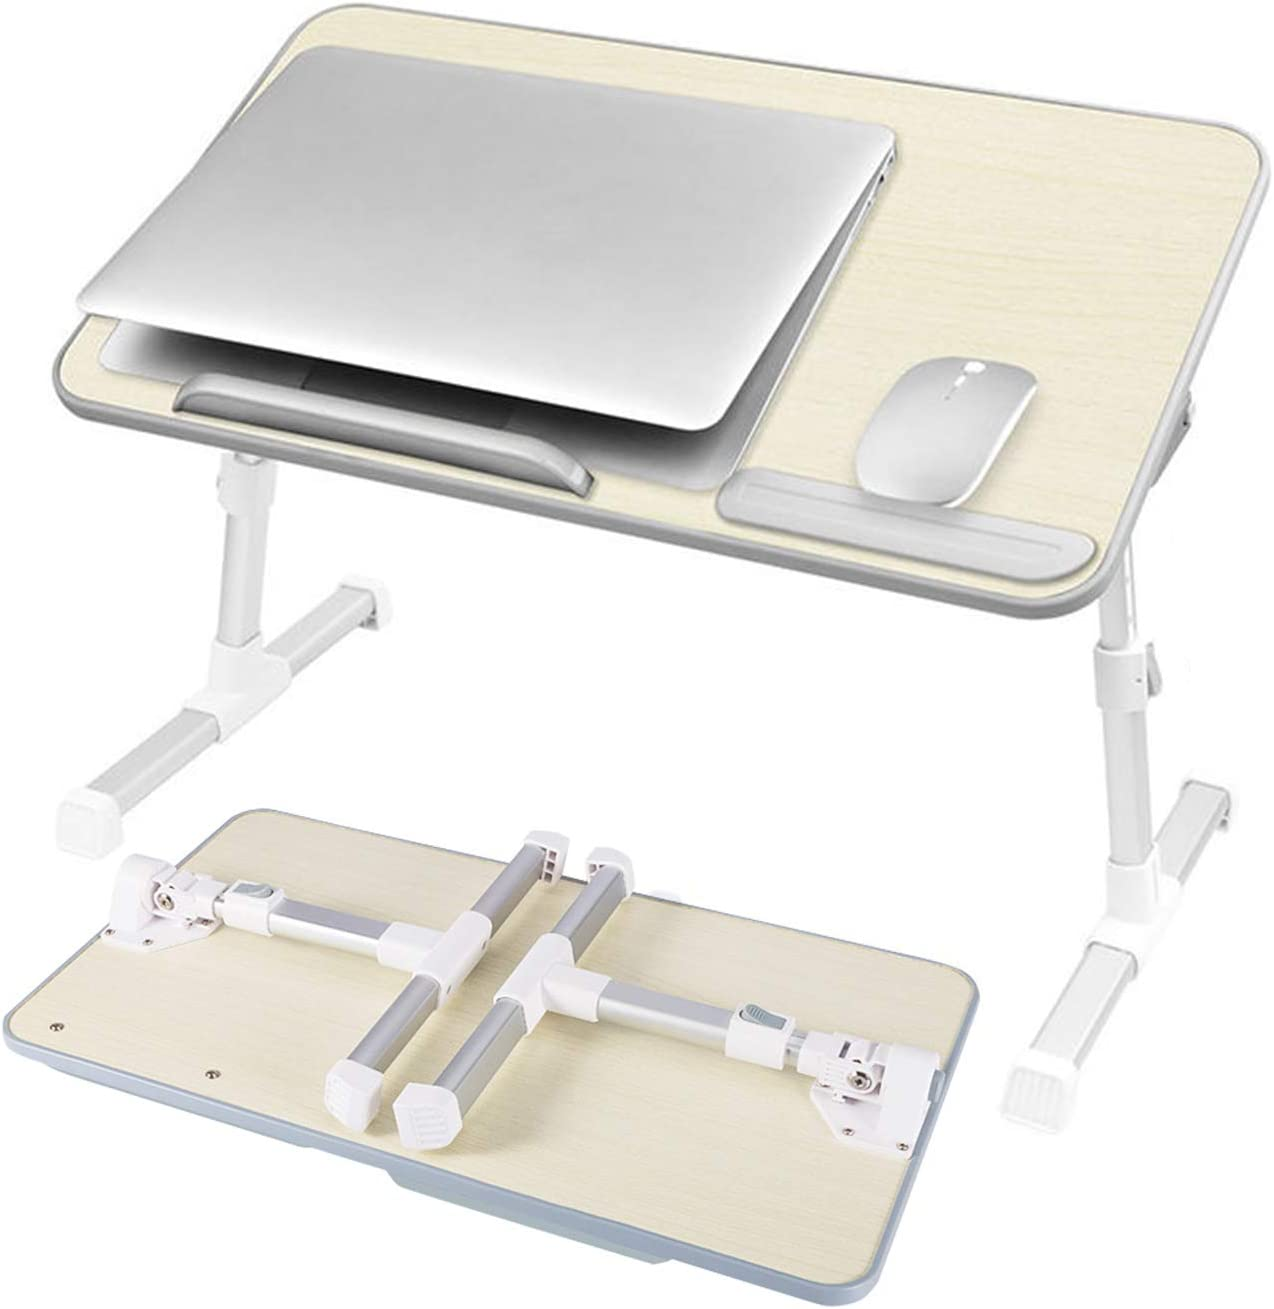 Bed Desk for Laptop, Adjustable Bed Table Tray Computer Desk, Portable Laptop Stand with Height and Angle Adjustable for Eating, Working, Writing, Gaming, Drawing (11.8IN X 20.4IN) (Wood)